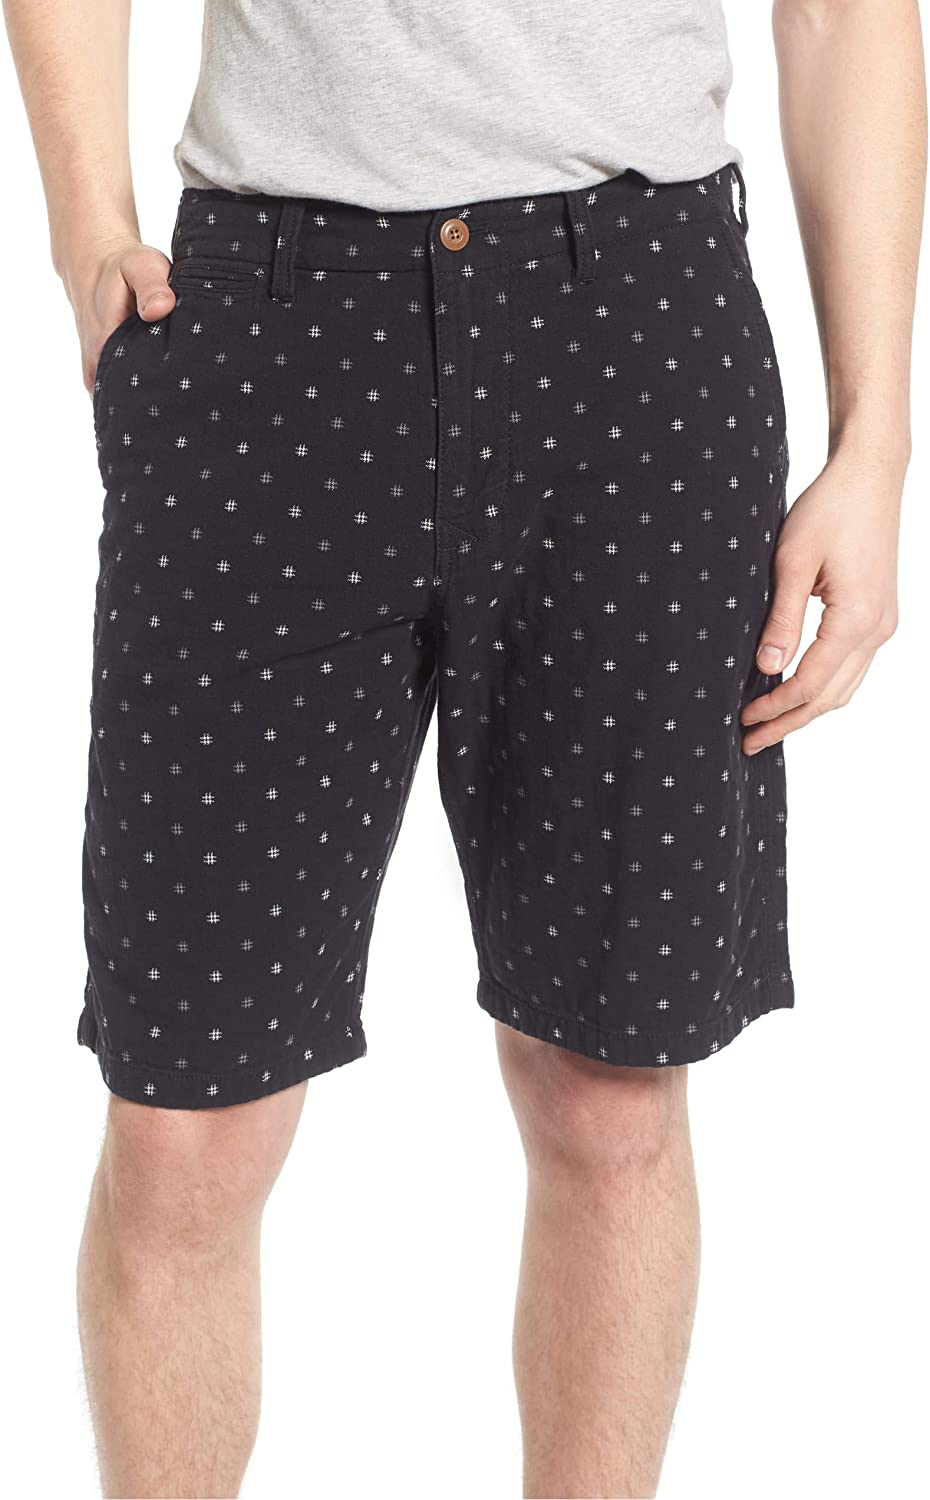 Lucky Brand Men's Black Hashtag Flat Front Short